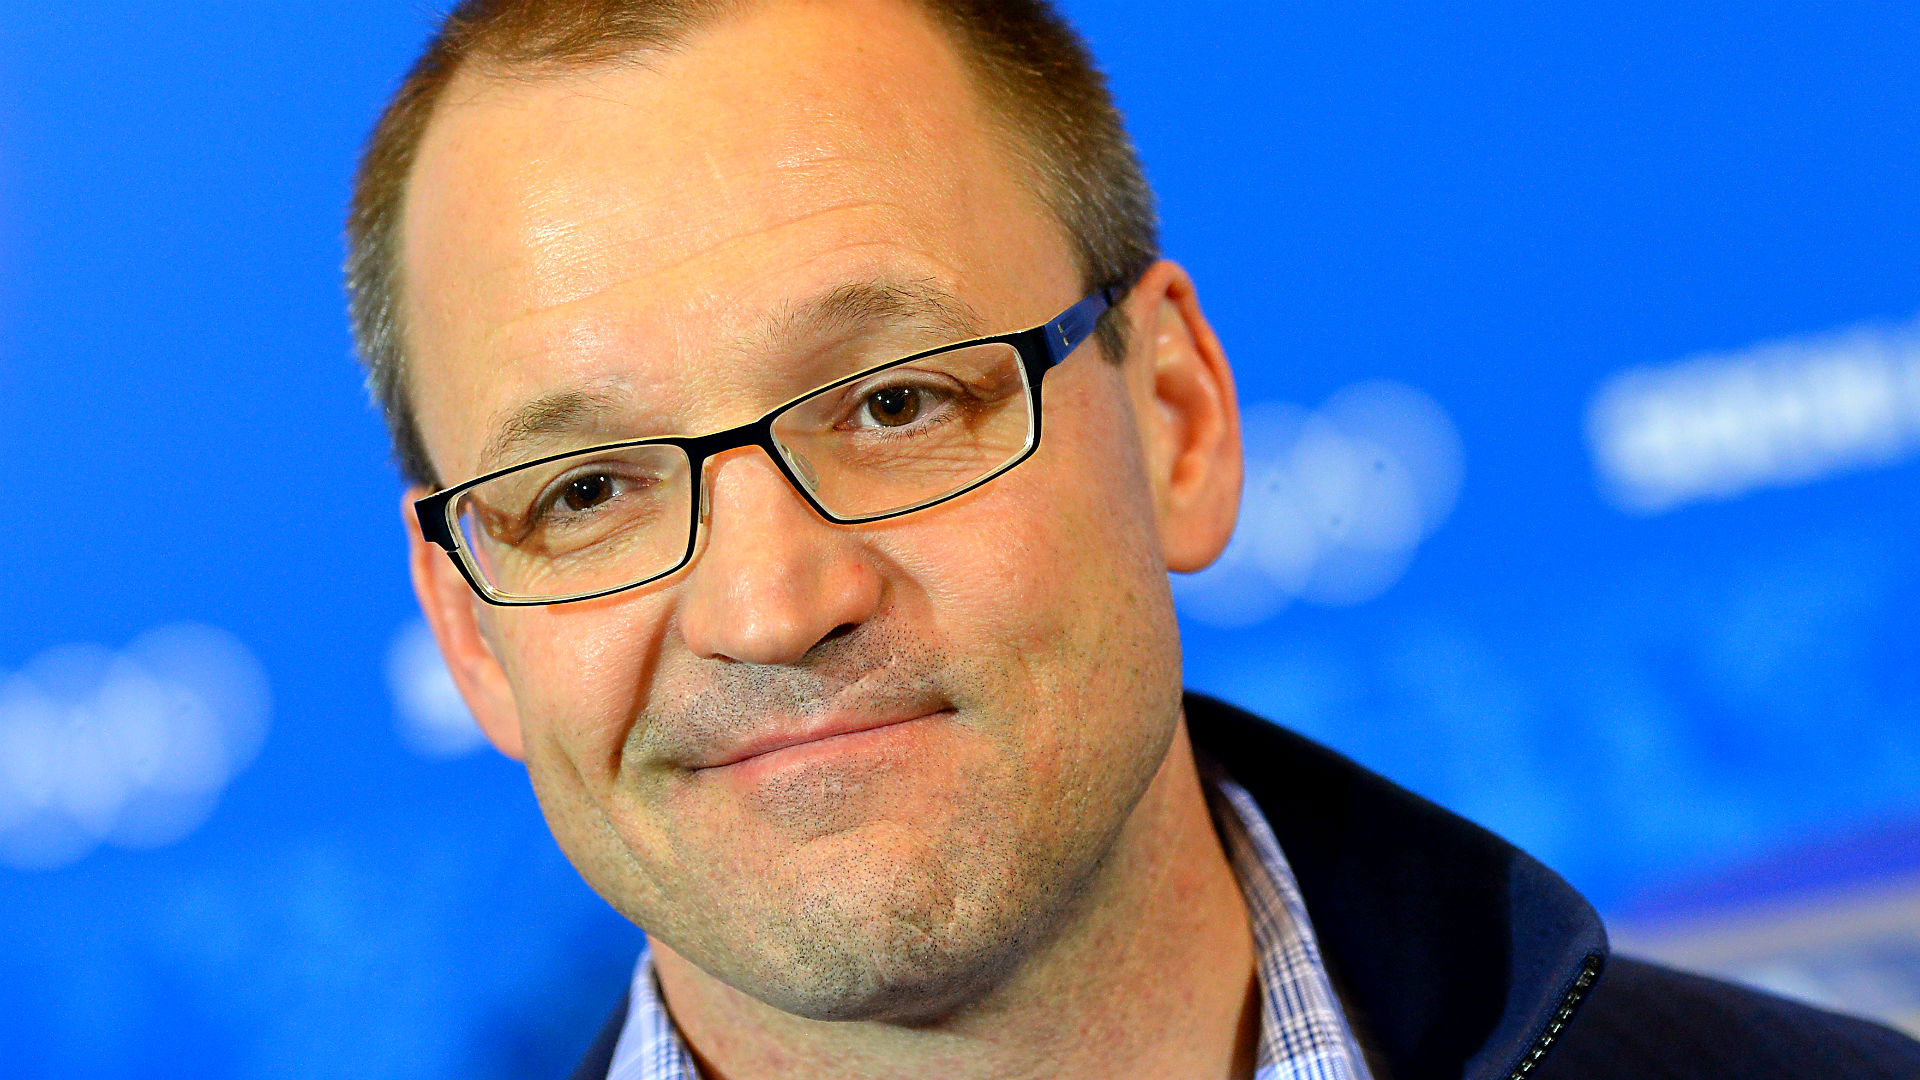 Dan Bylsma reportedly has agreement in place to coach Sabres